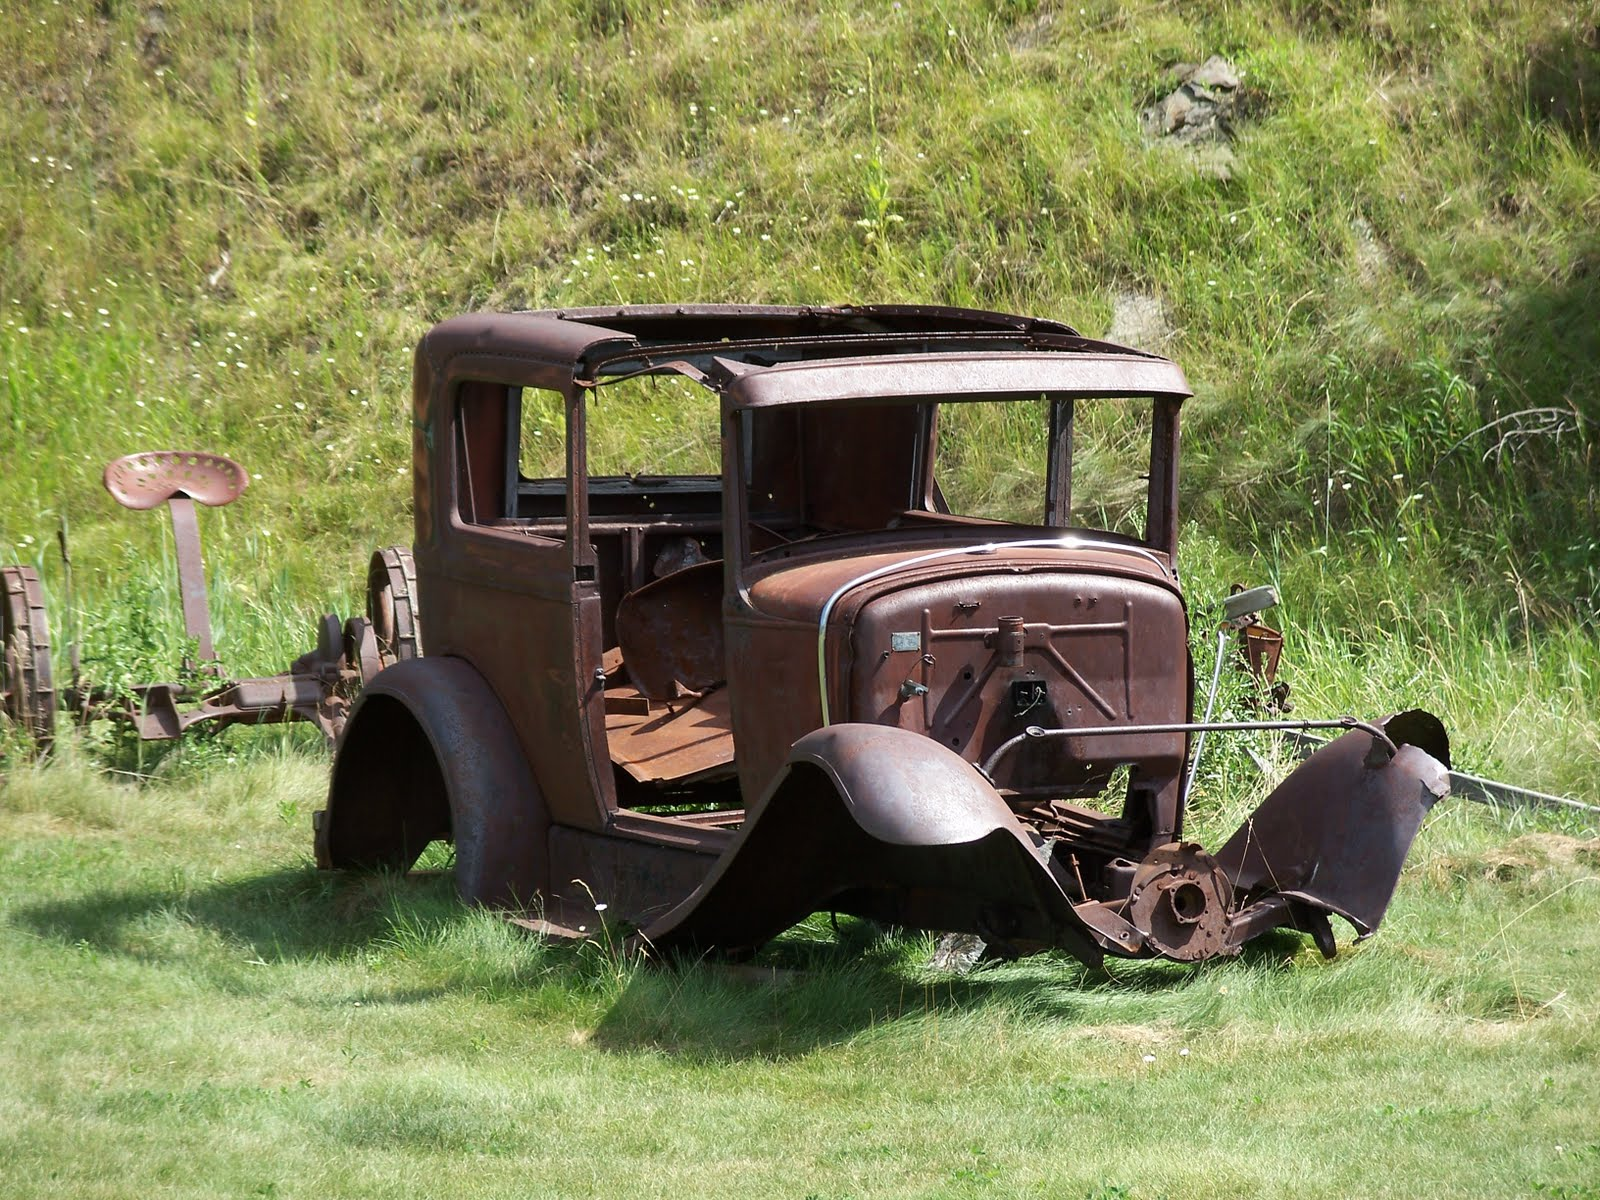 Abandoned Cars and Rusty Trucks - Mother Nature Sculpts Junk into ...